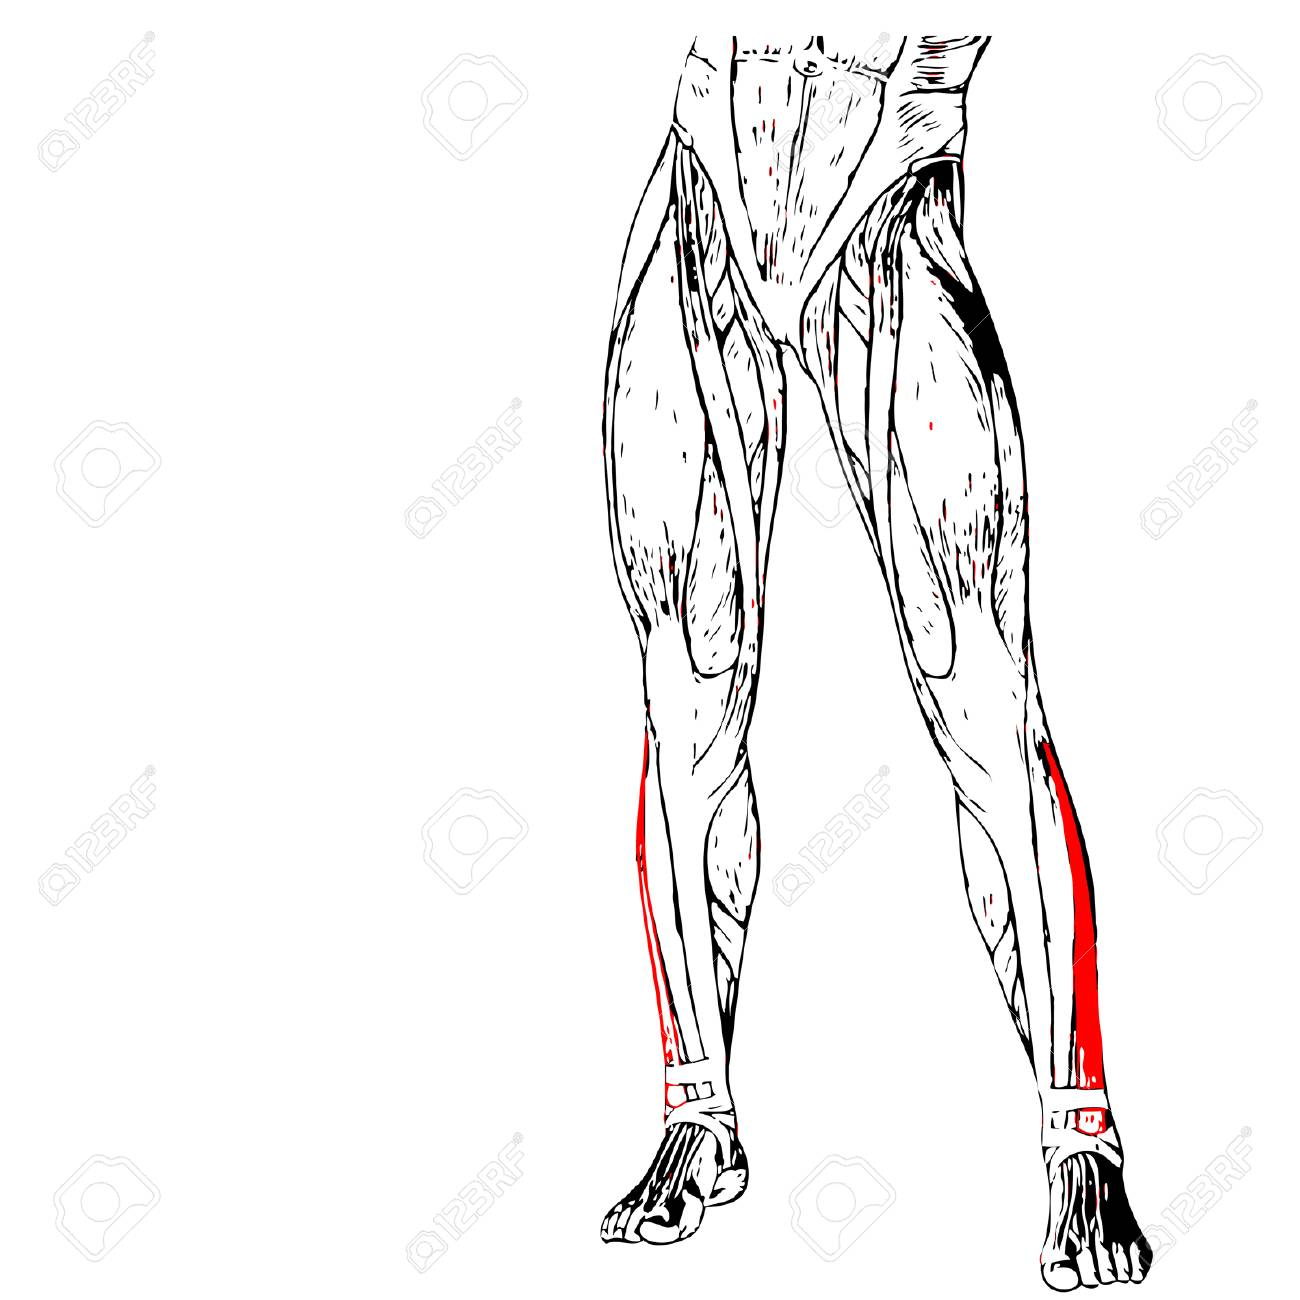 Concept Or Conceptual 3d Human Lower Leg Anatomy Or Anatomical